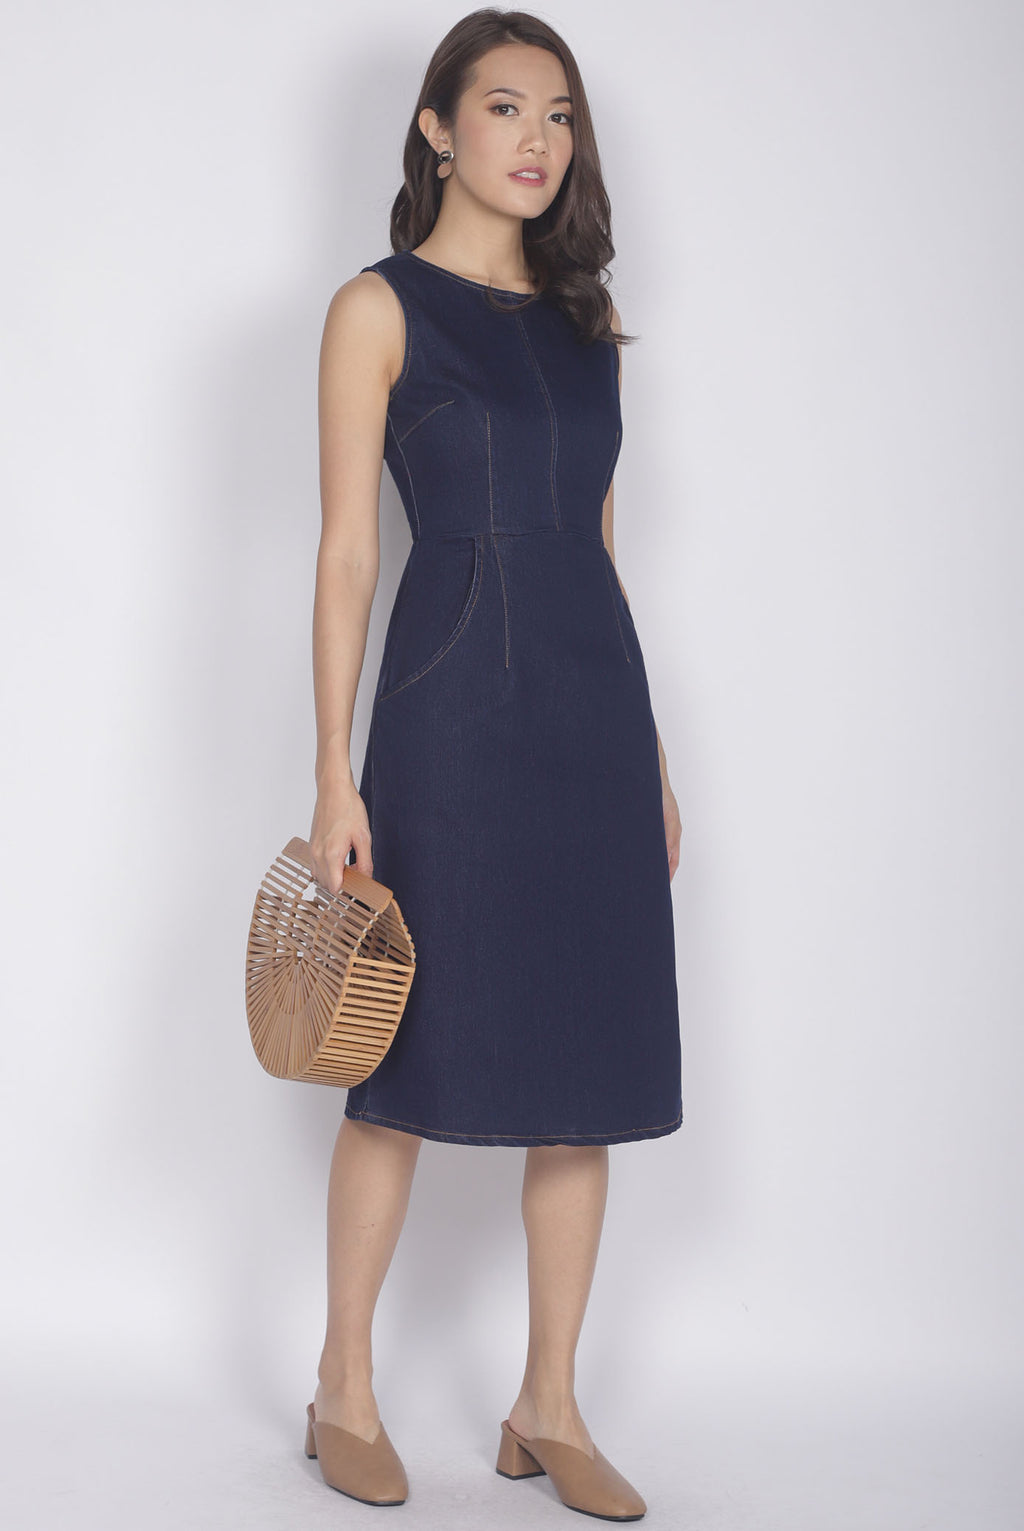 Lottie Denim Dress In Dark Wash